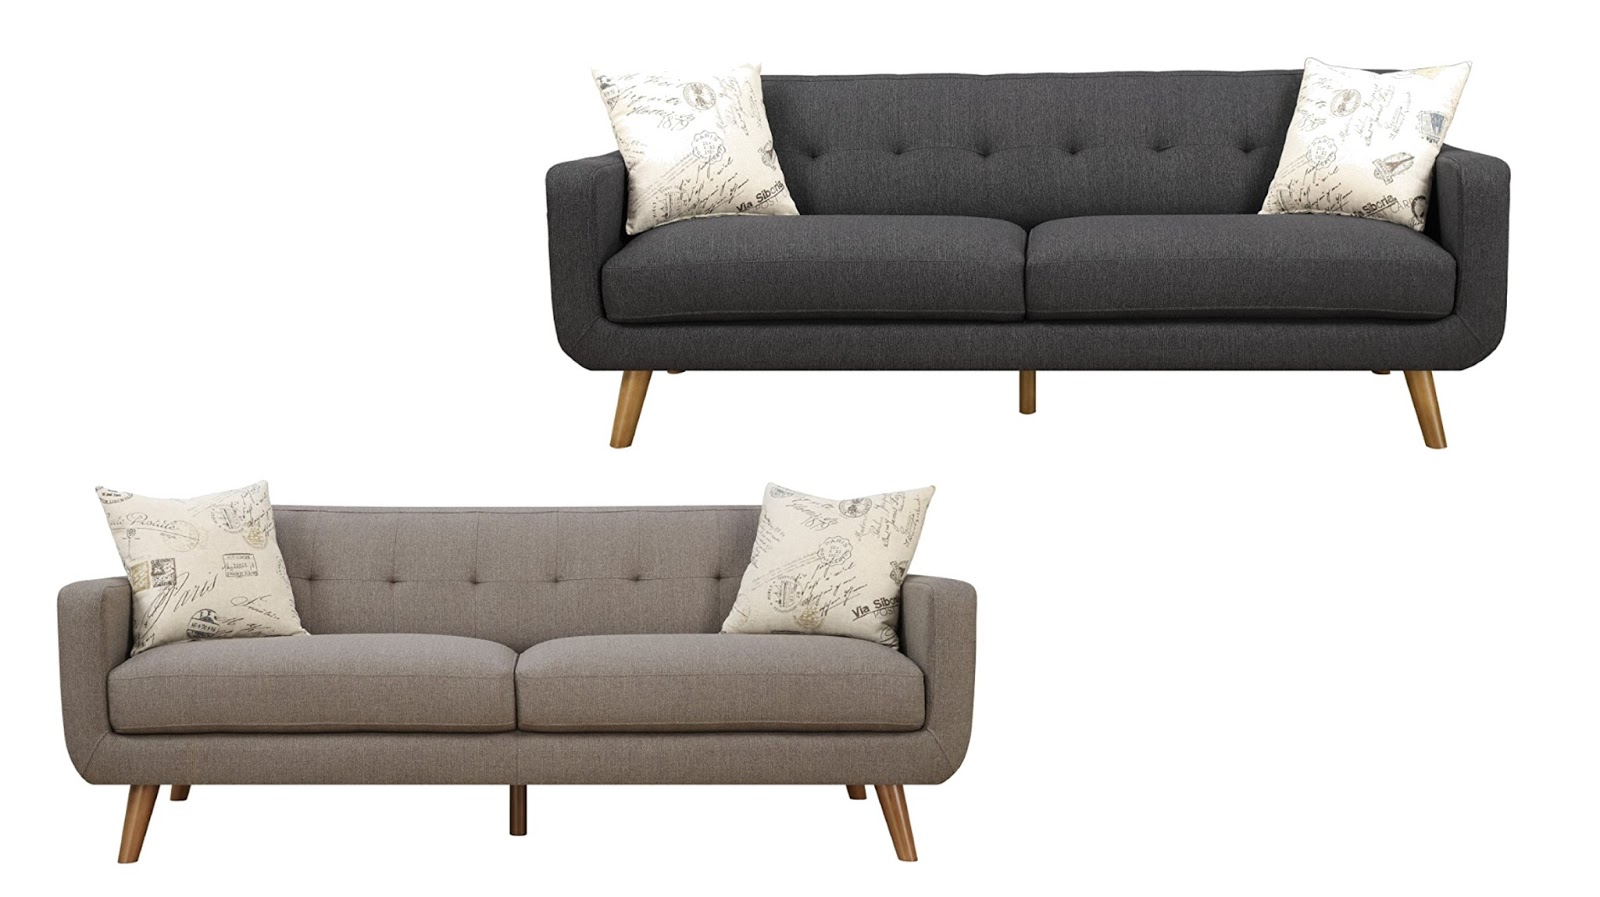 13 Affordable Mid Century Style Sofas, Ranging From $336   $790, All Online